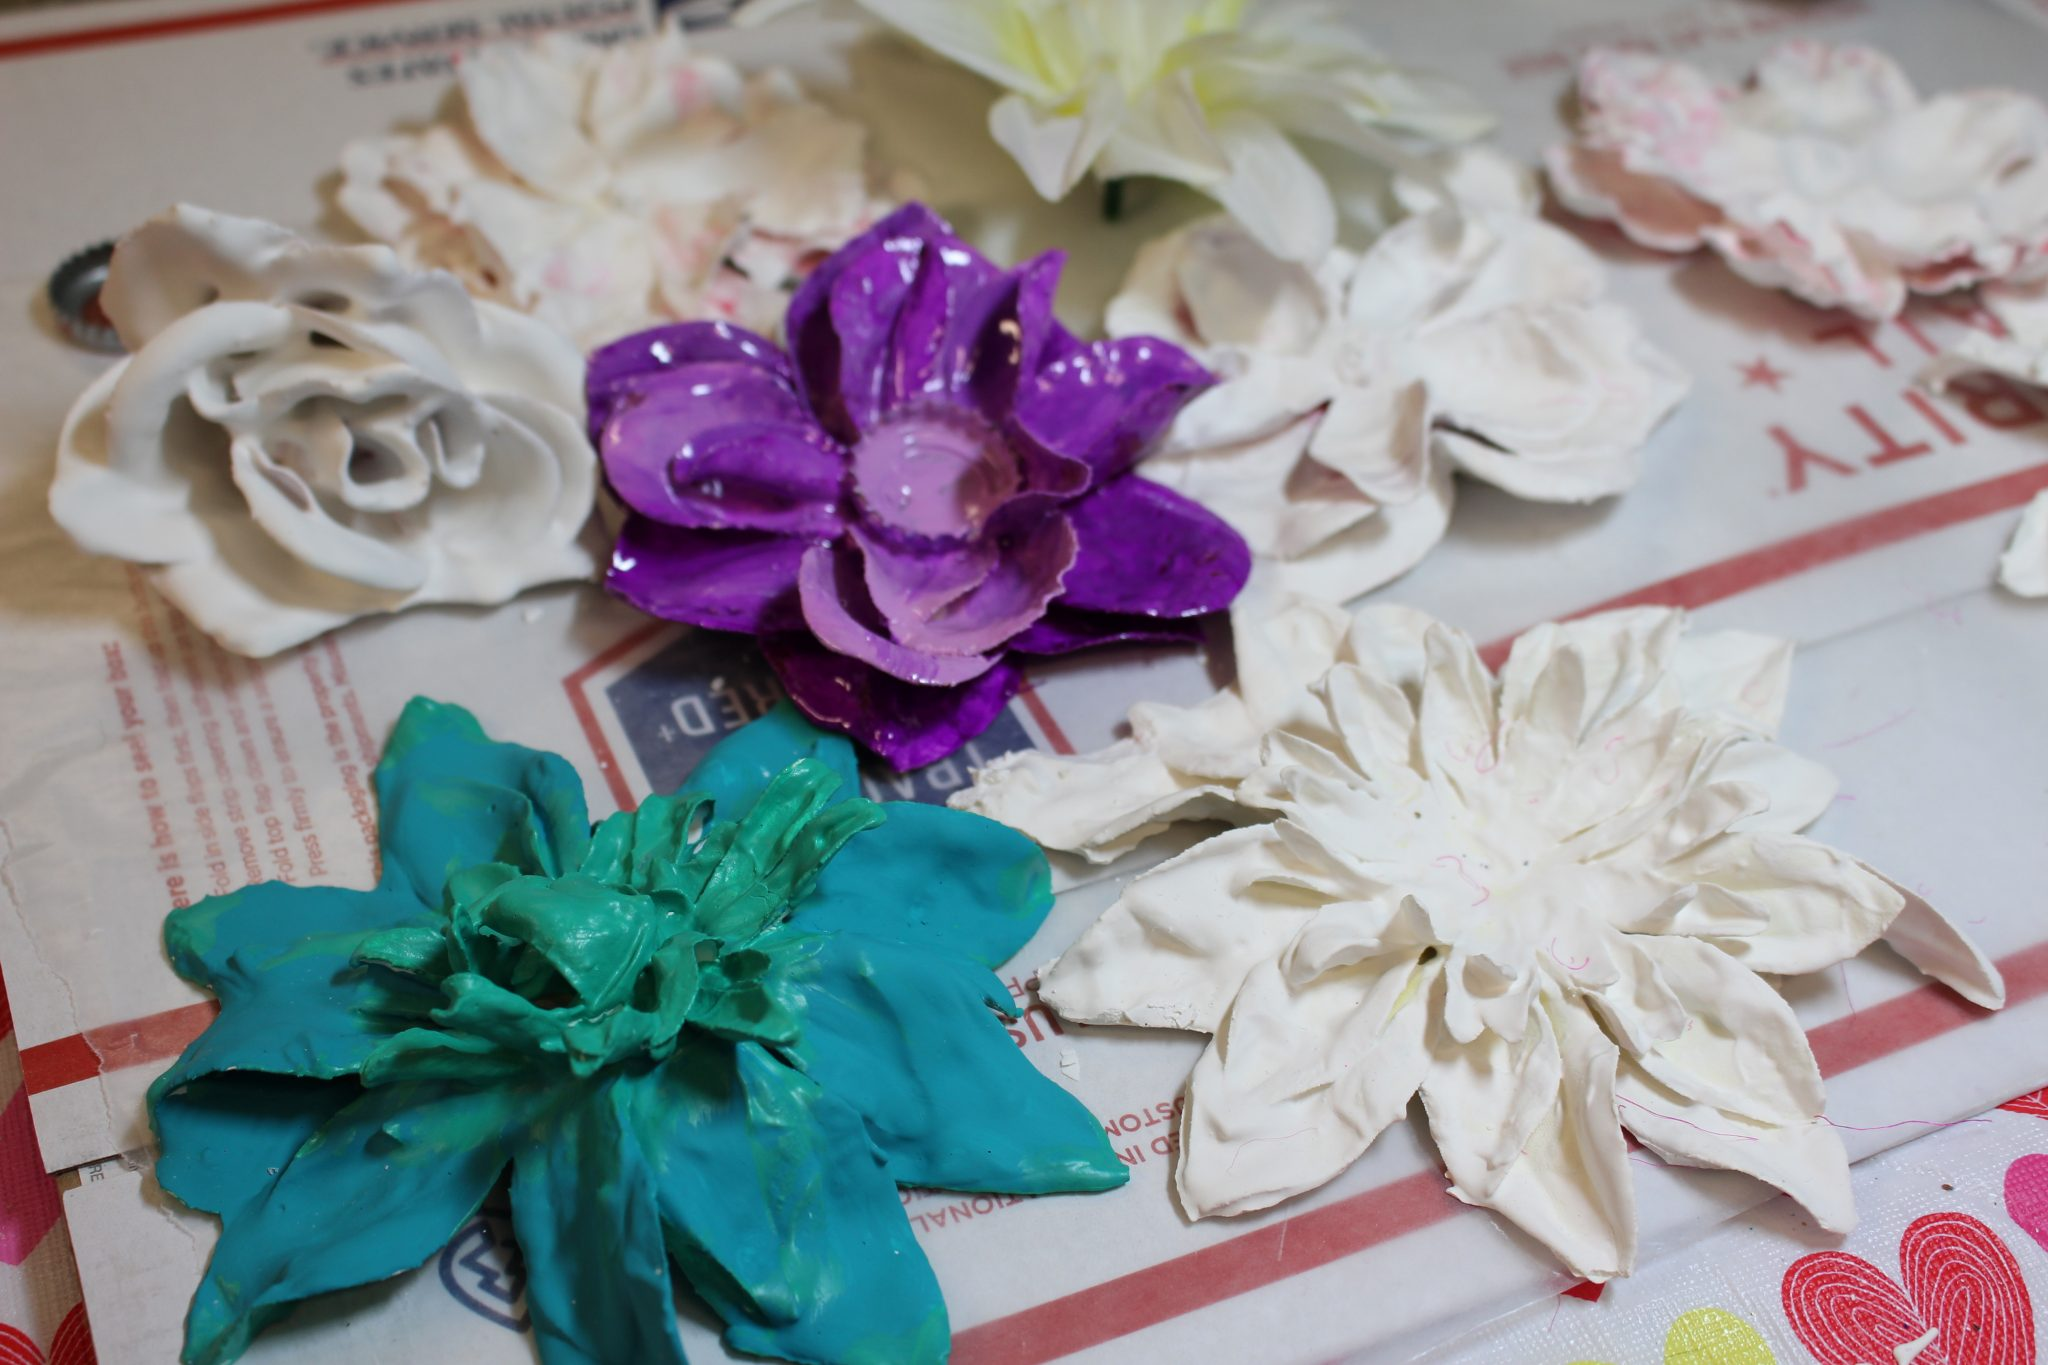 How To Make These Stunning Plaster Dipped Flowers The Crafty Chica